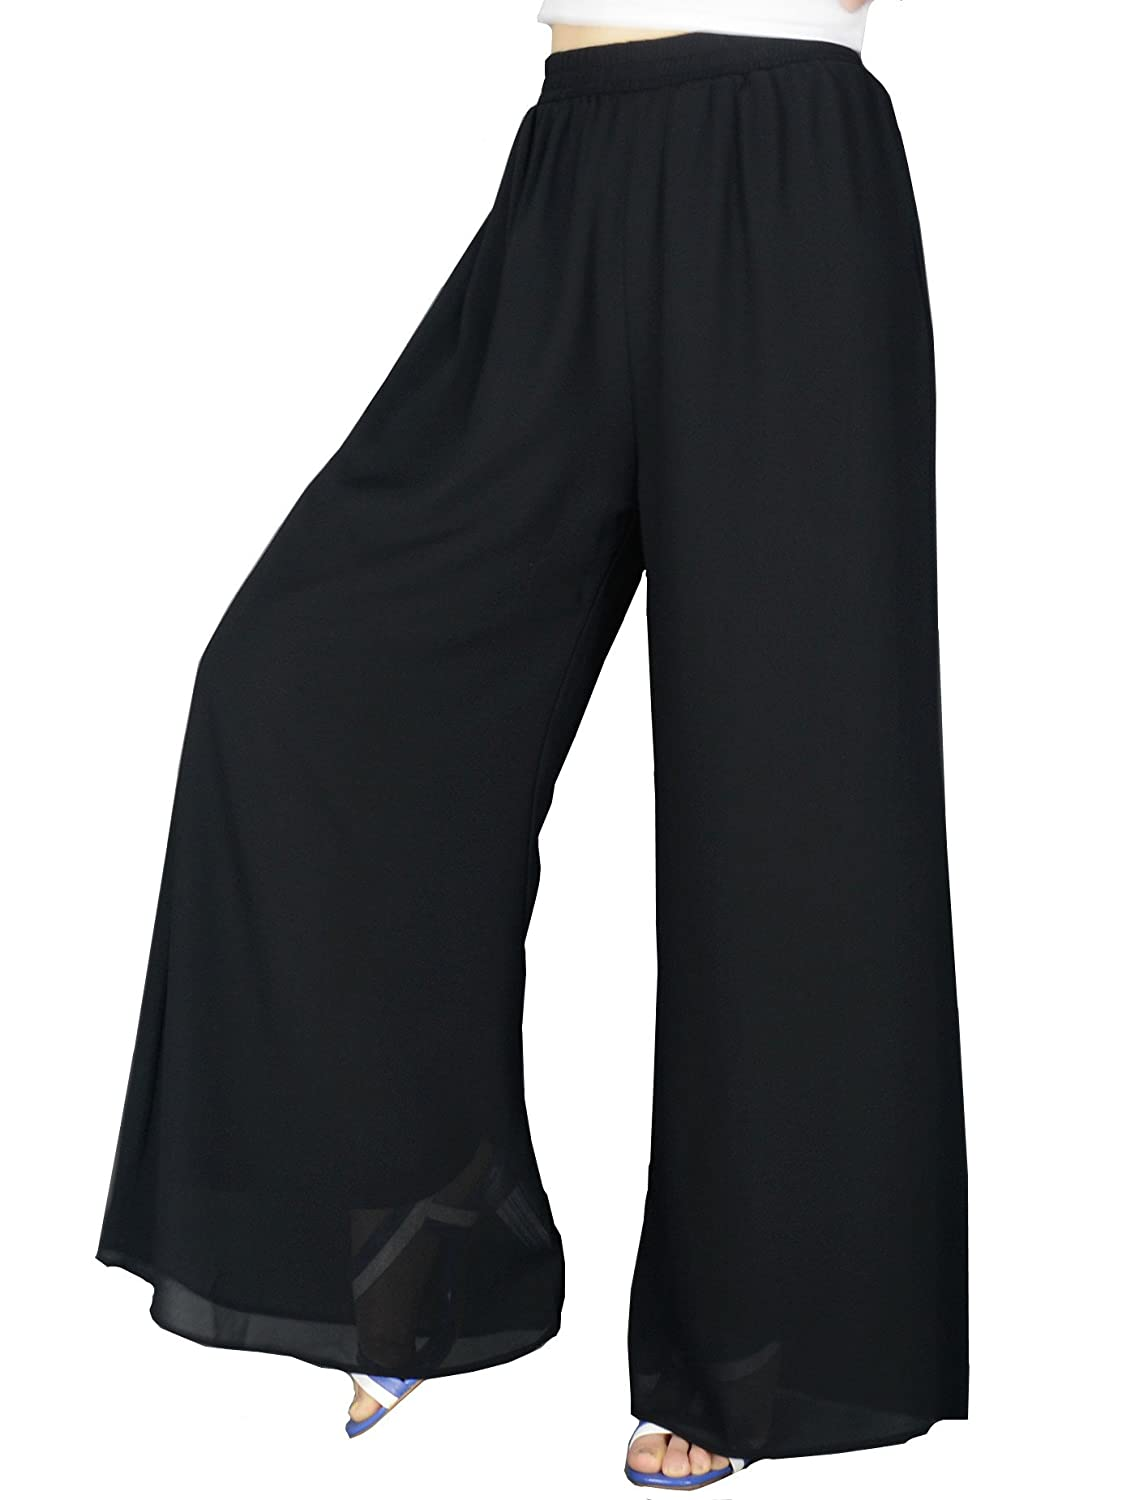 Vintage Wide Leg Pants 1920s to 1950s History YSJERA Womens Chiffon Wide Leg Palazzo Pants Maxi Full Length Solid Gaucho Pants Culottes Trousers $21.99 AT vintagedancer.com